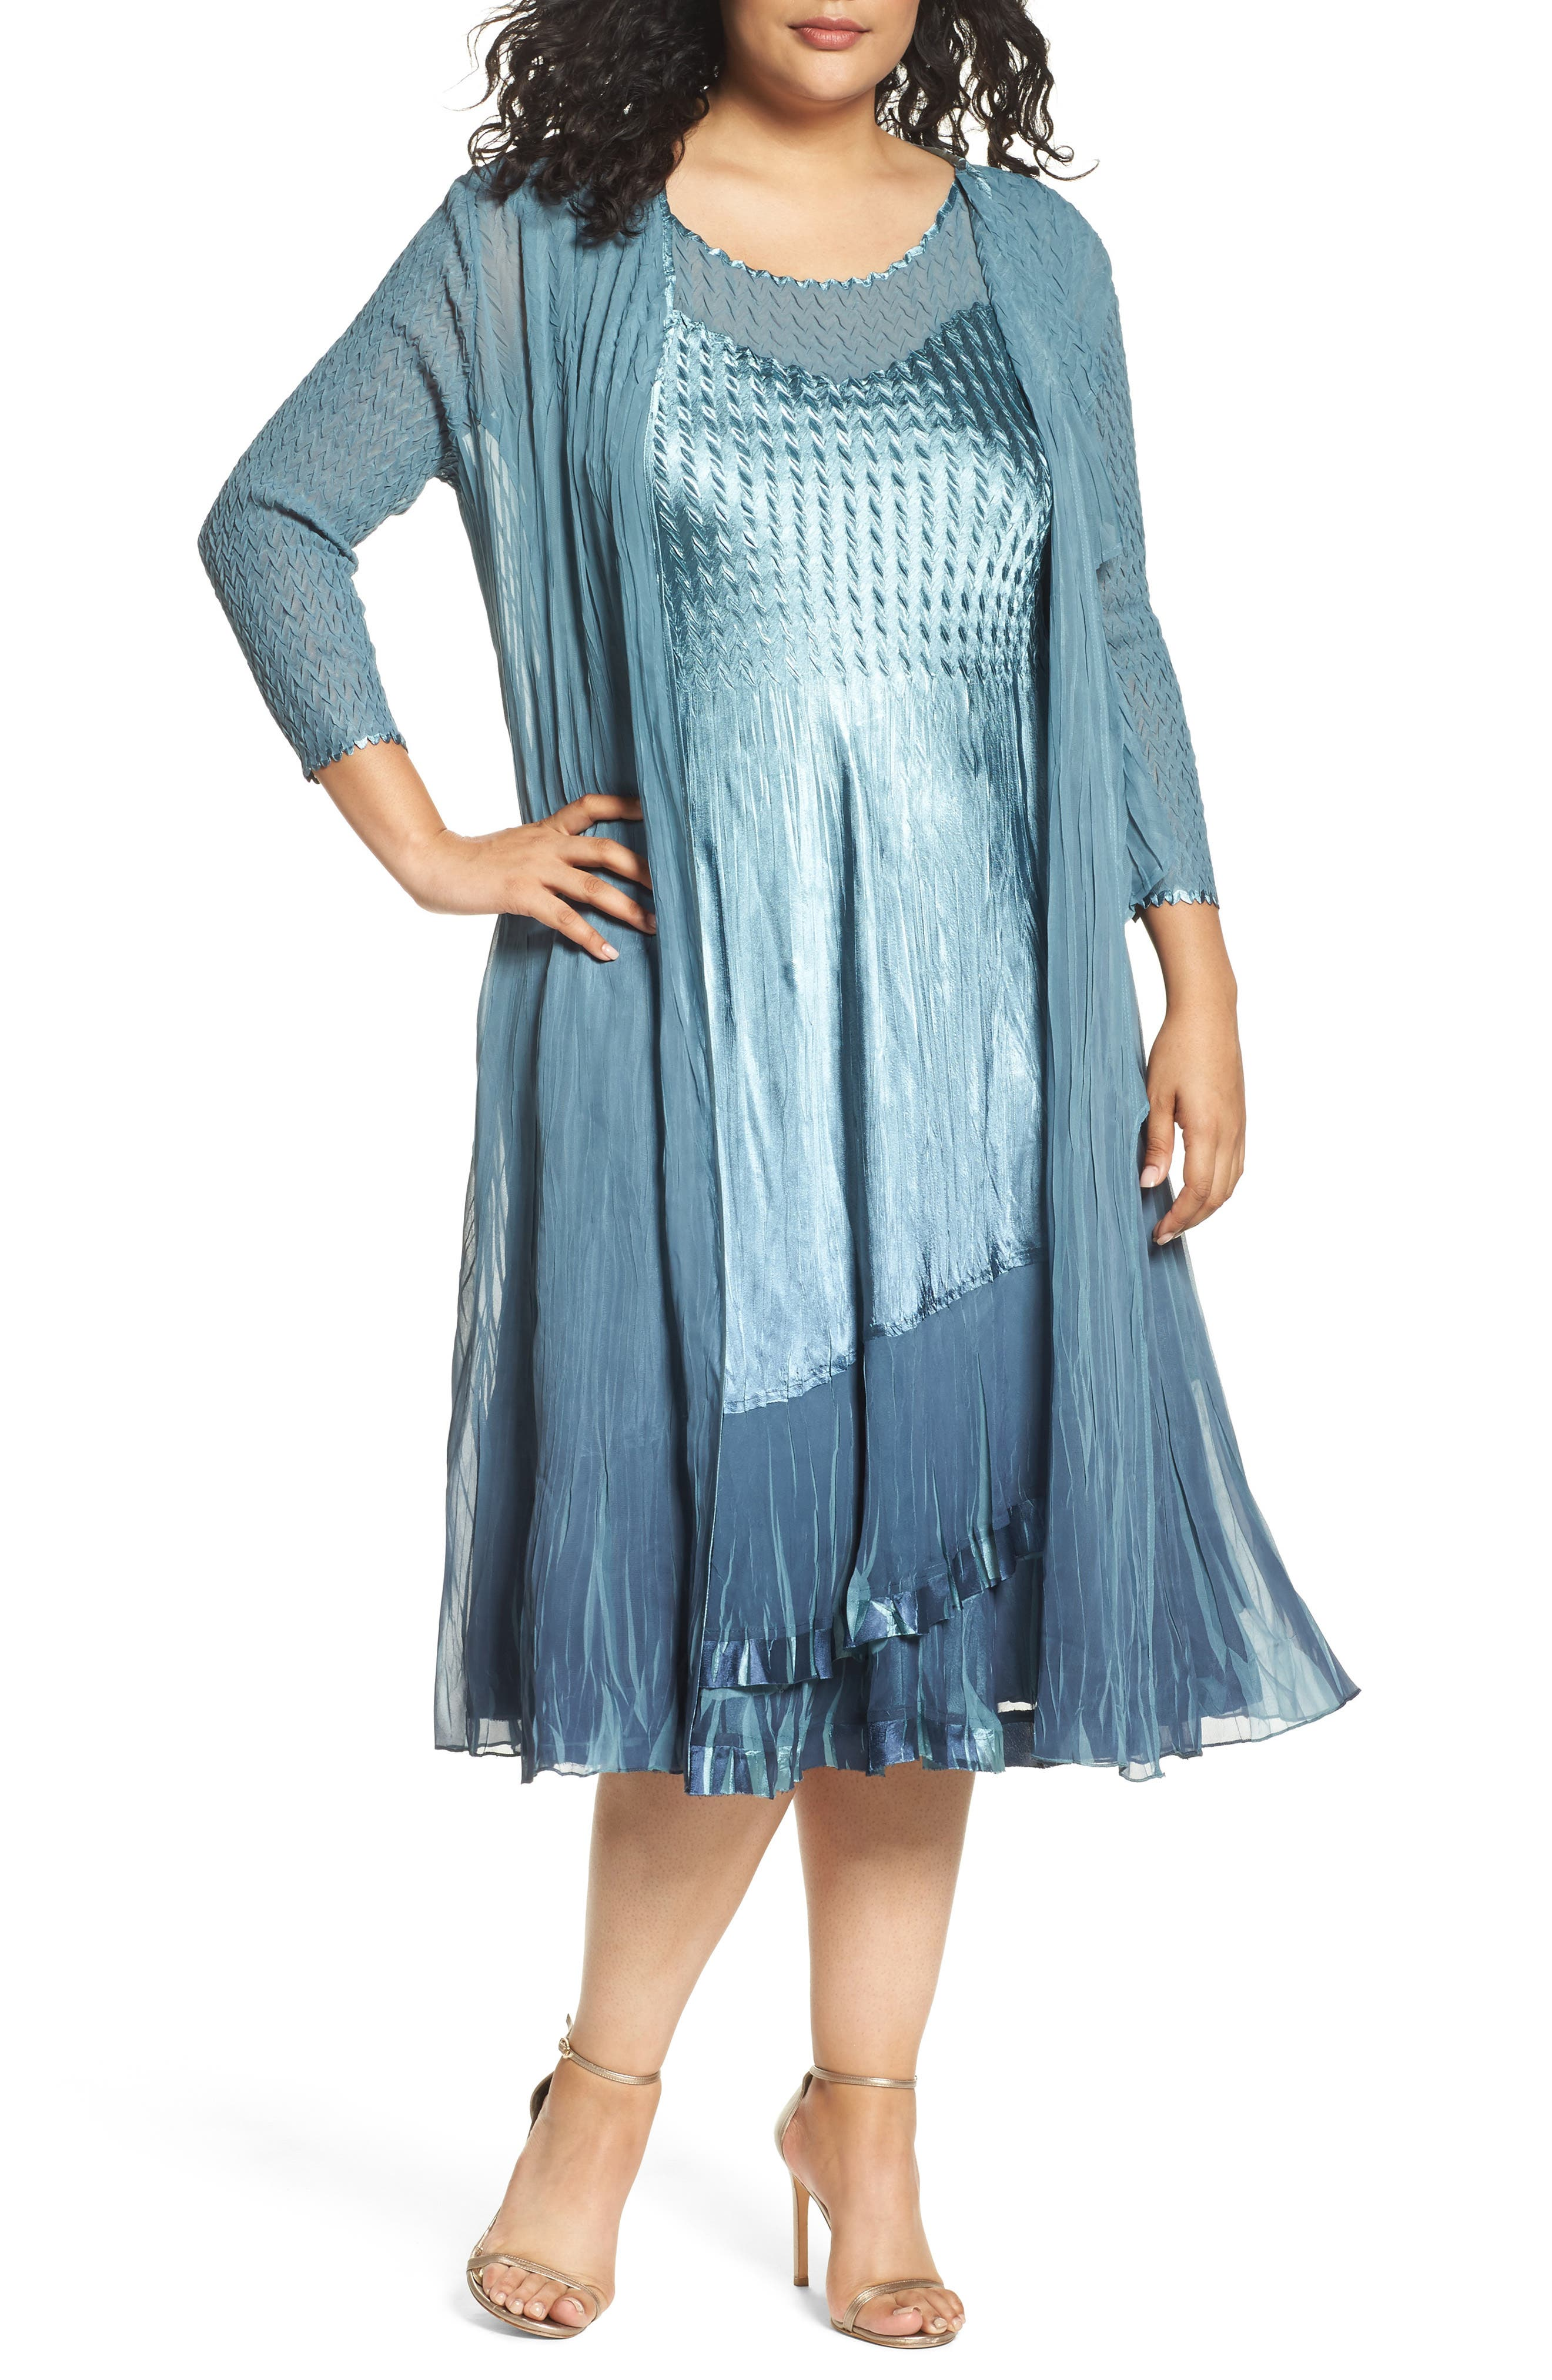 Main Image - Komarov Tiered Dress with Jacket (Plus Size)